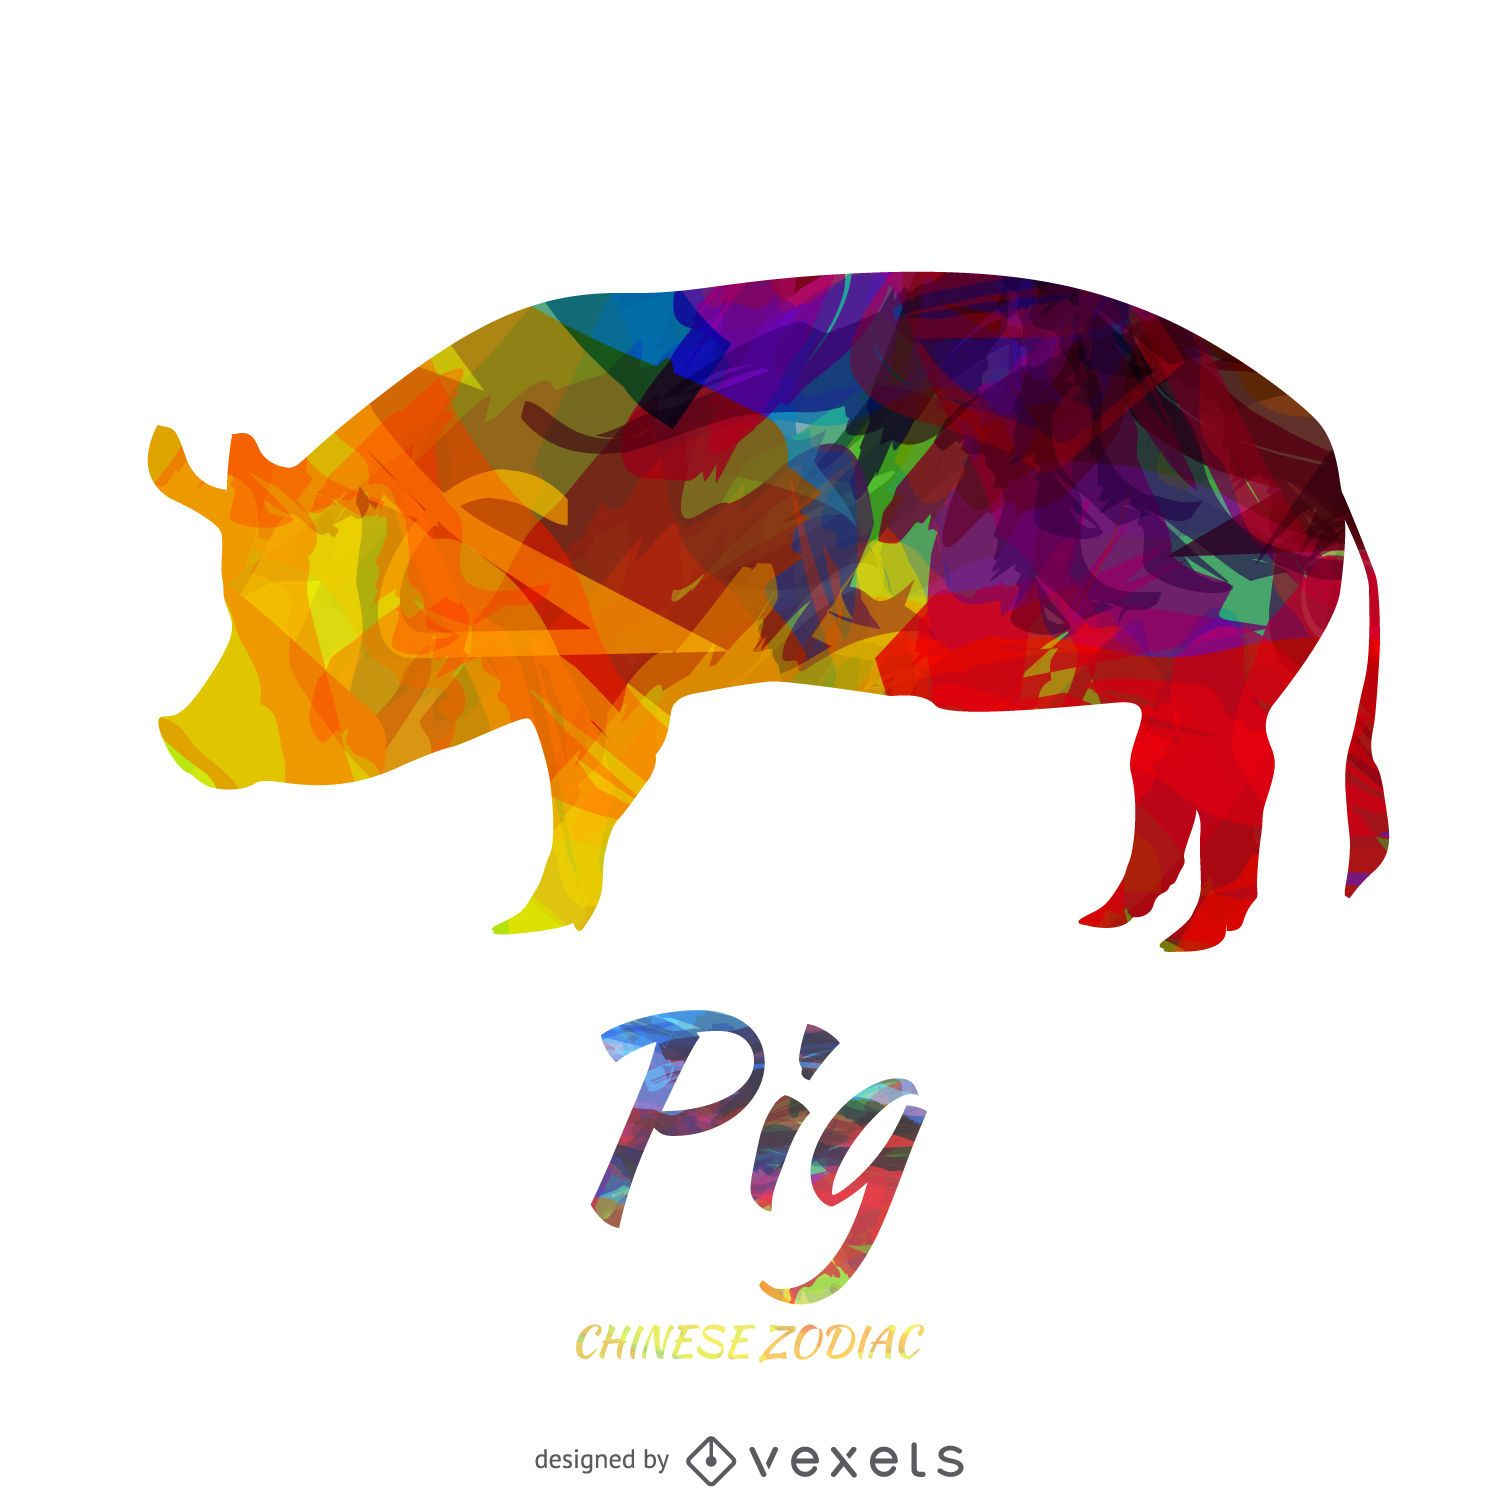 Colored Pig - Chinese Zodiac